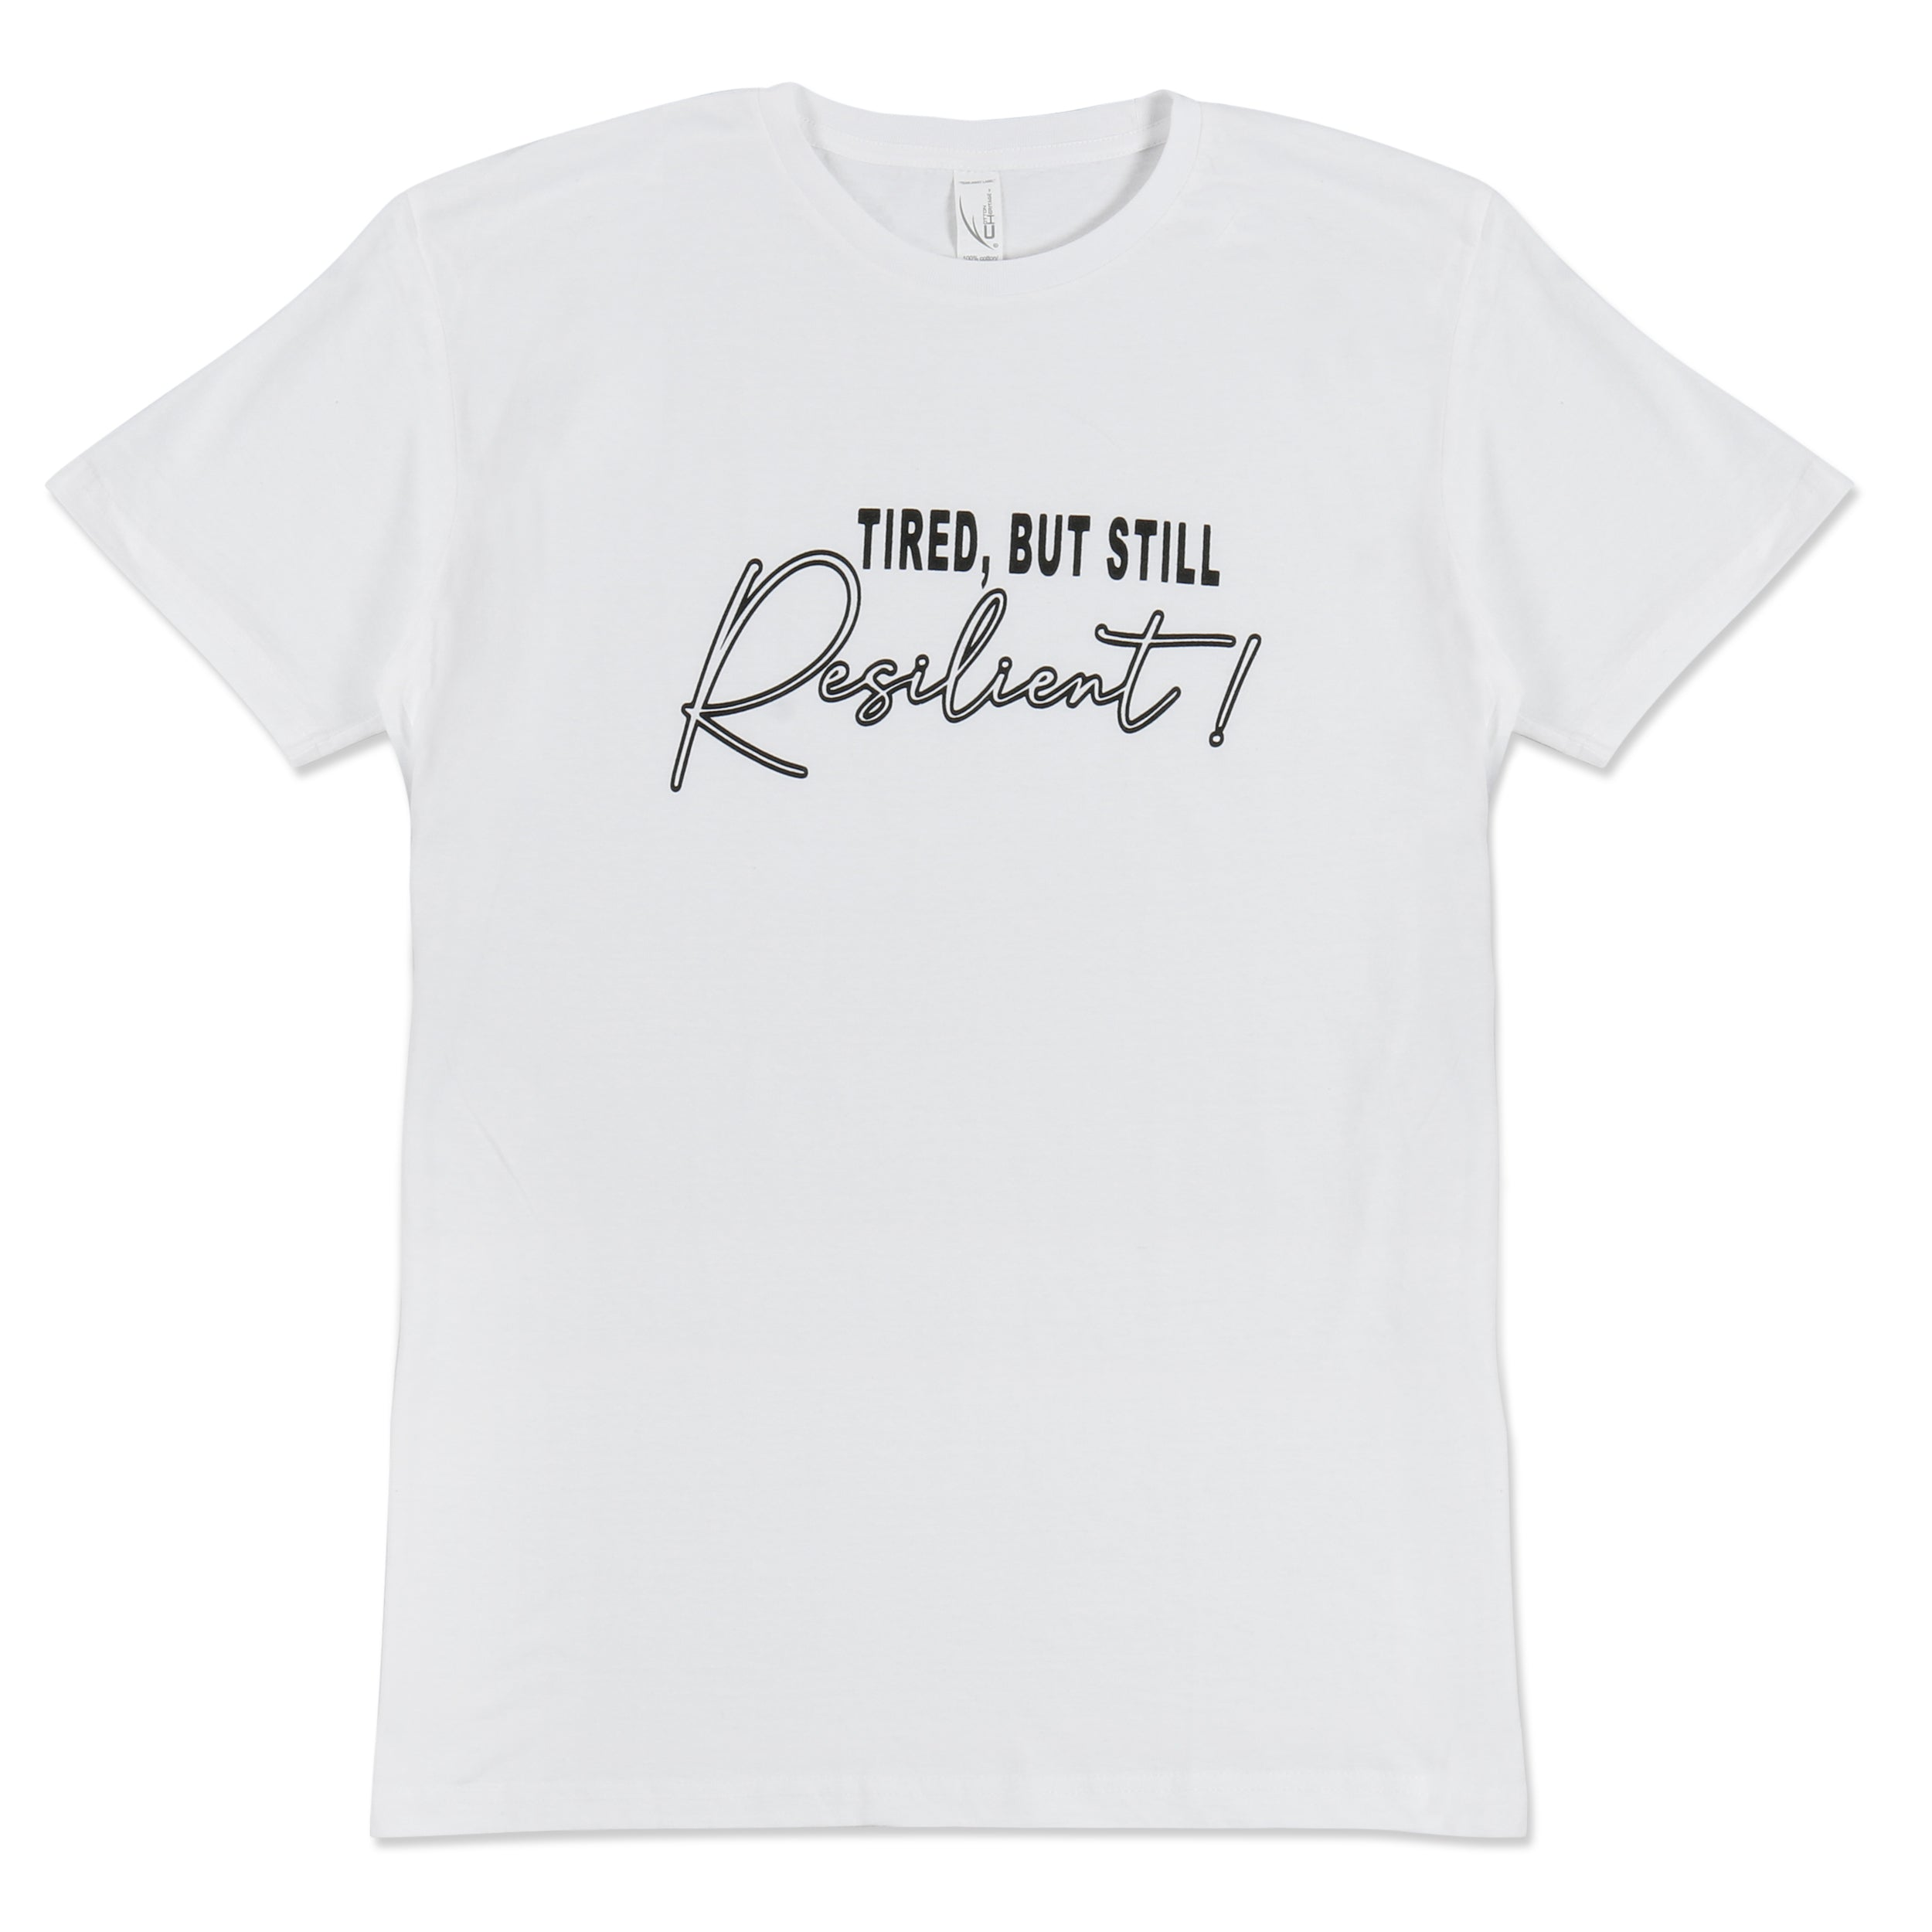 Tired, but still RESILIENT Tee